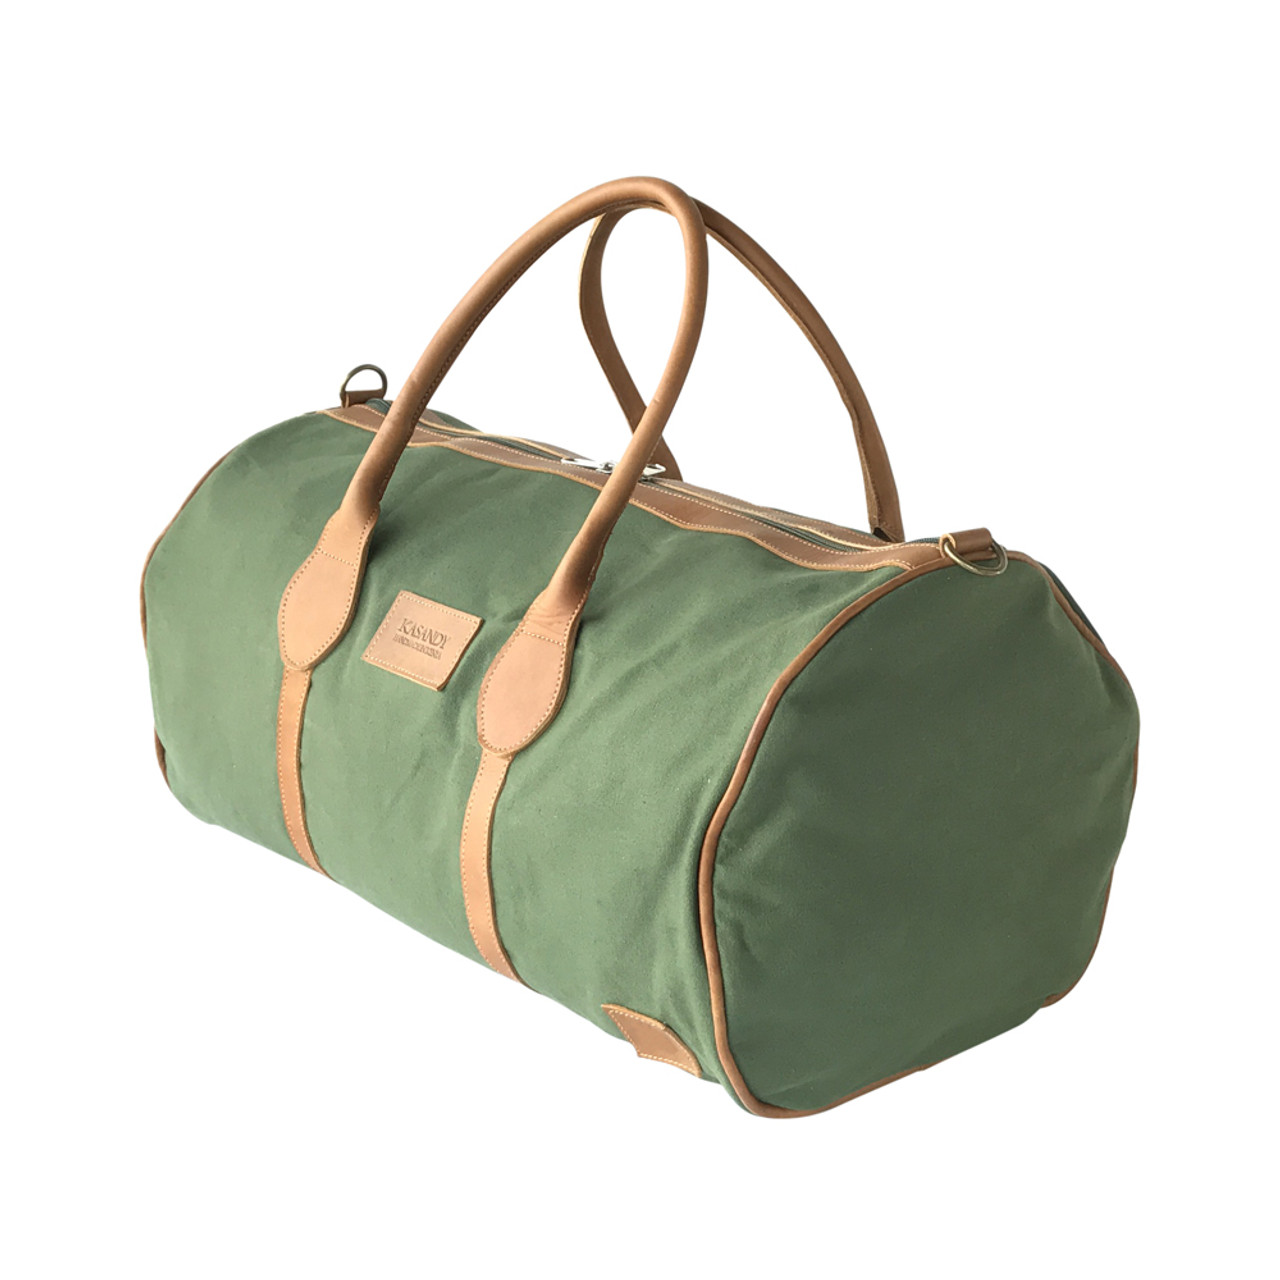 Clever Travel Weekender Duffle Bag Olive Green Canvas Tan Lear Trim Travel Weekender Duffle Bag Olive Green Canvas Tan Lear Small Duffle Bag Purse Small Duffle Bag Target baby Small Duffle Bag